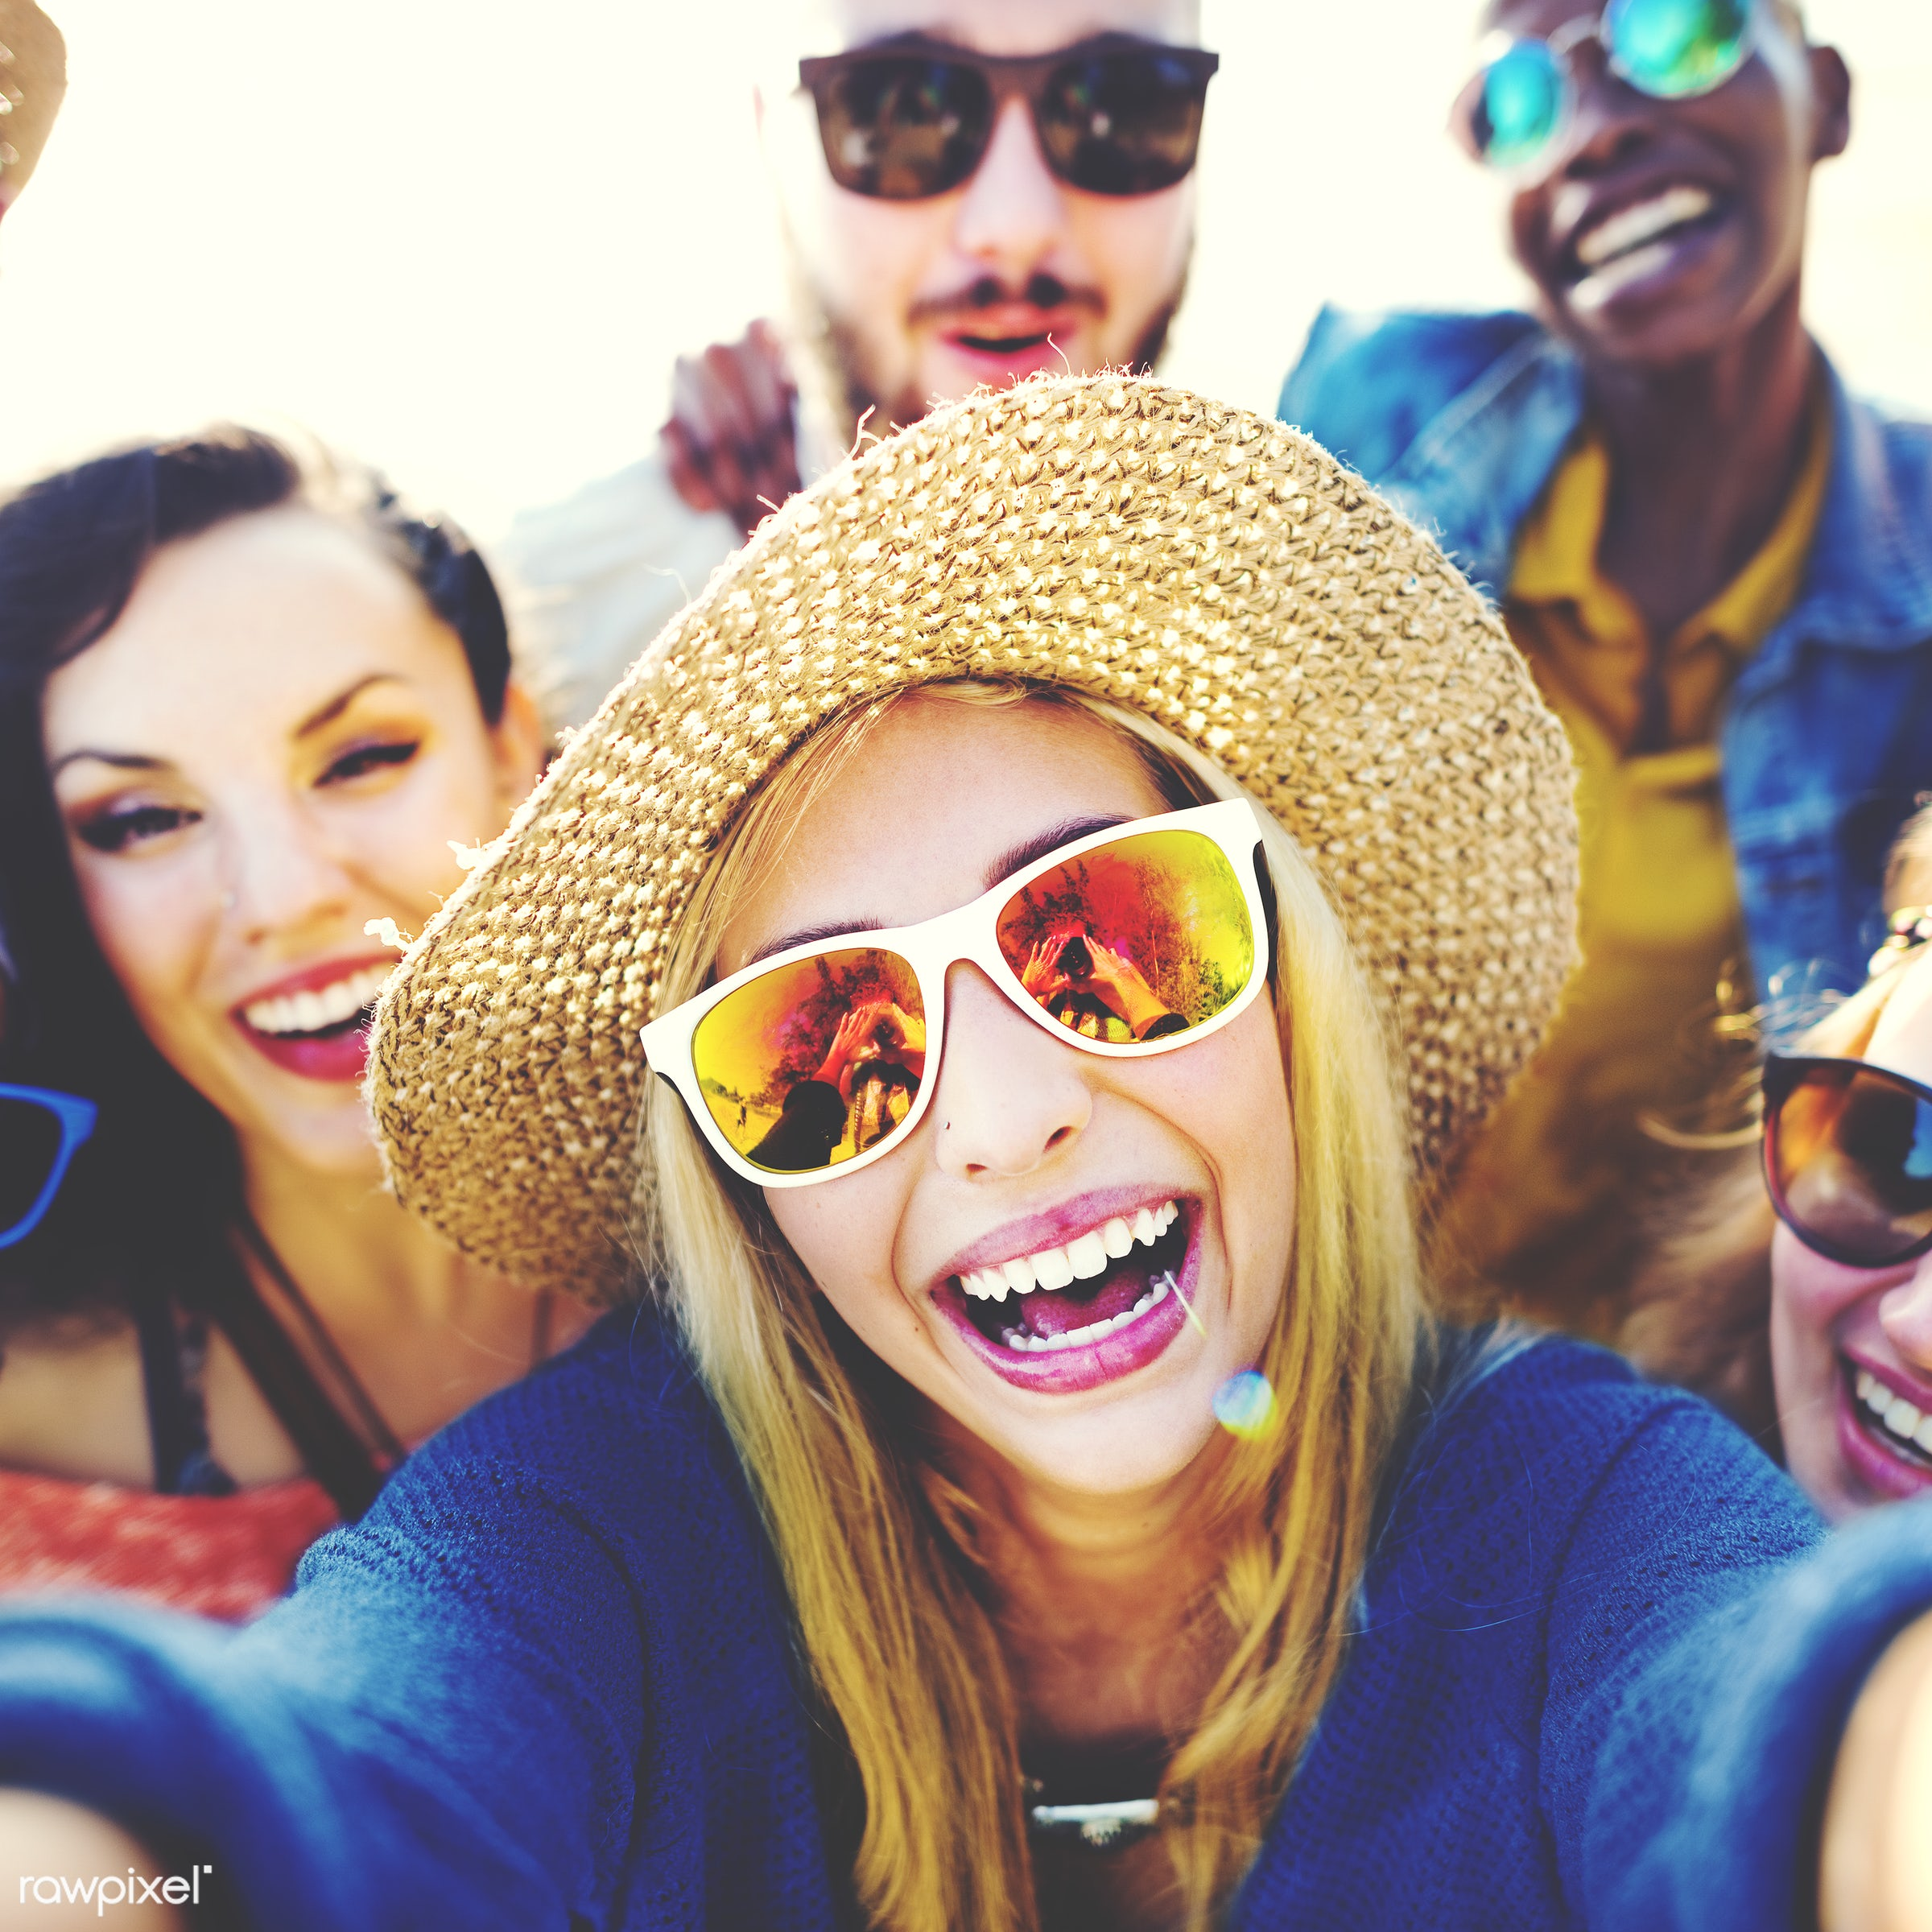 selfie, african descent, beach, bonding, camera, casual, cheerful, colorful, day, diverse, diversity, enjoyment, ethnic,...